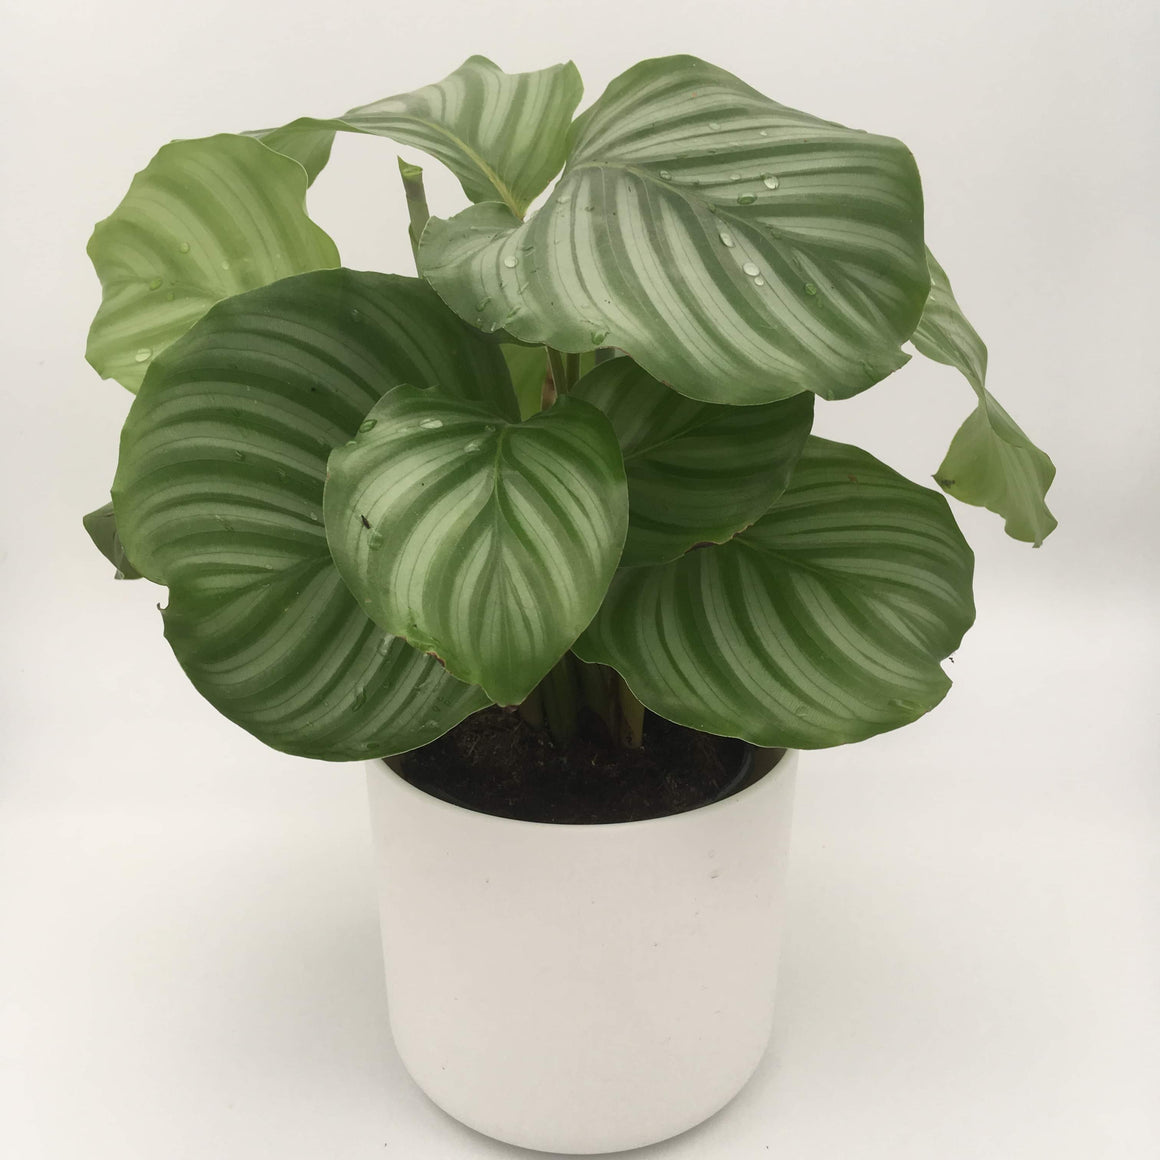 Calathea Orbifolia - Cambridge Bee